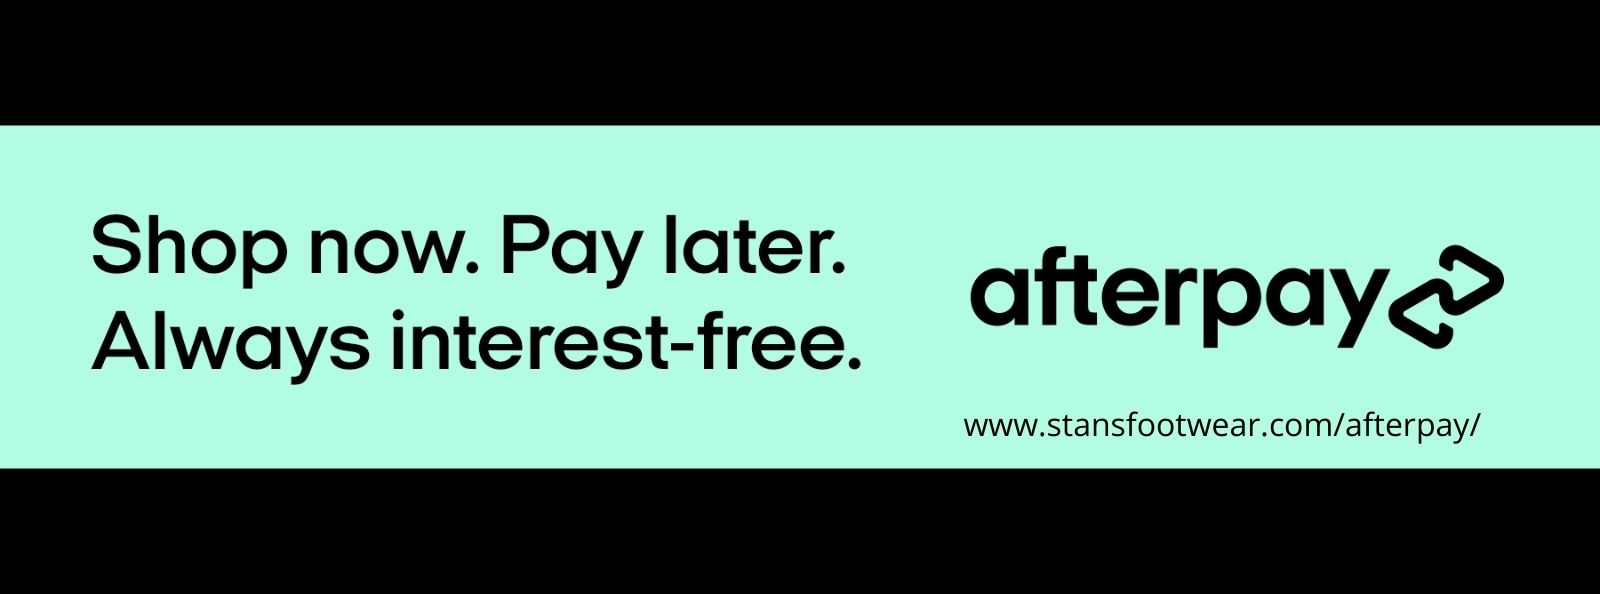 Shop Now. Pay Later. Always Interest-free. Afterpay!